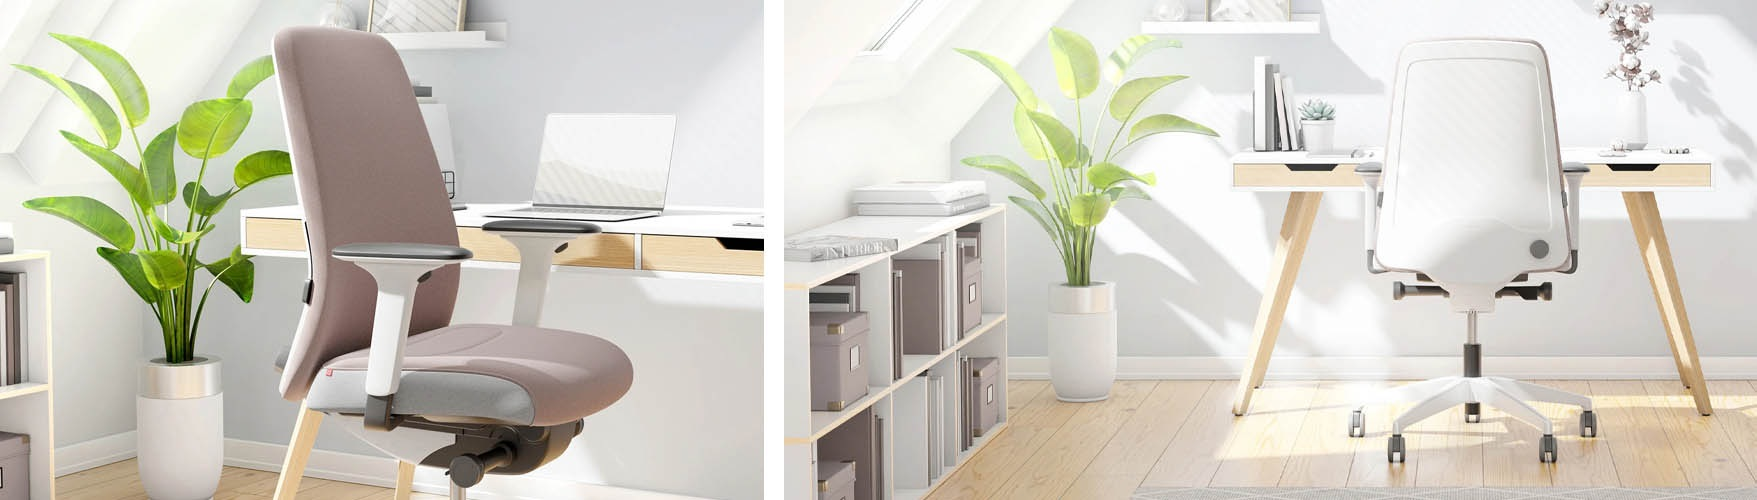 interstuhl-every-interior-edition-taupe-banner